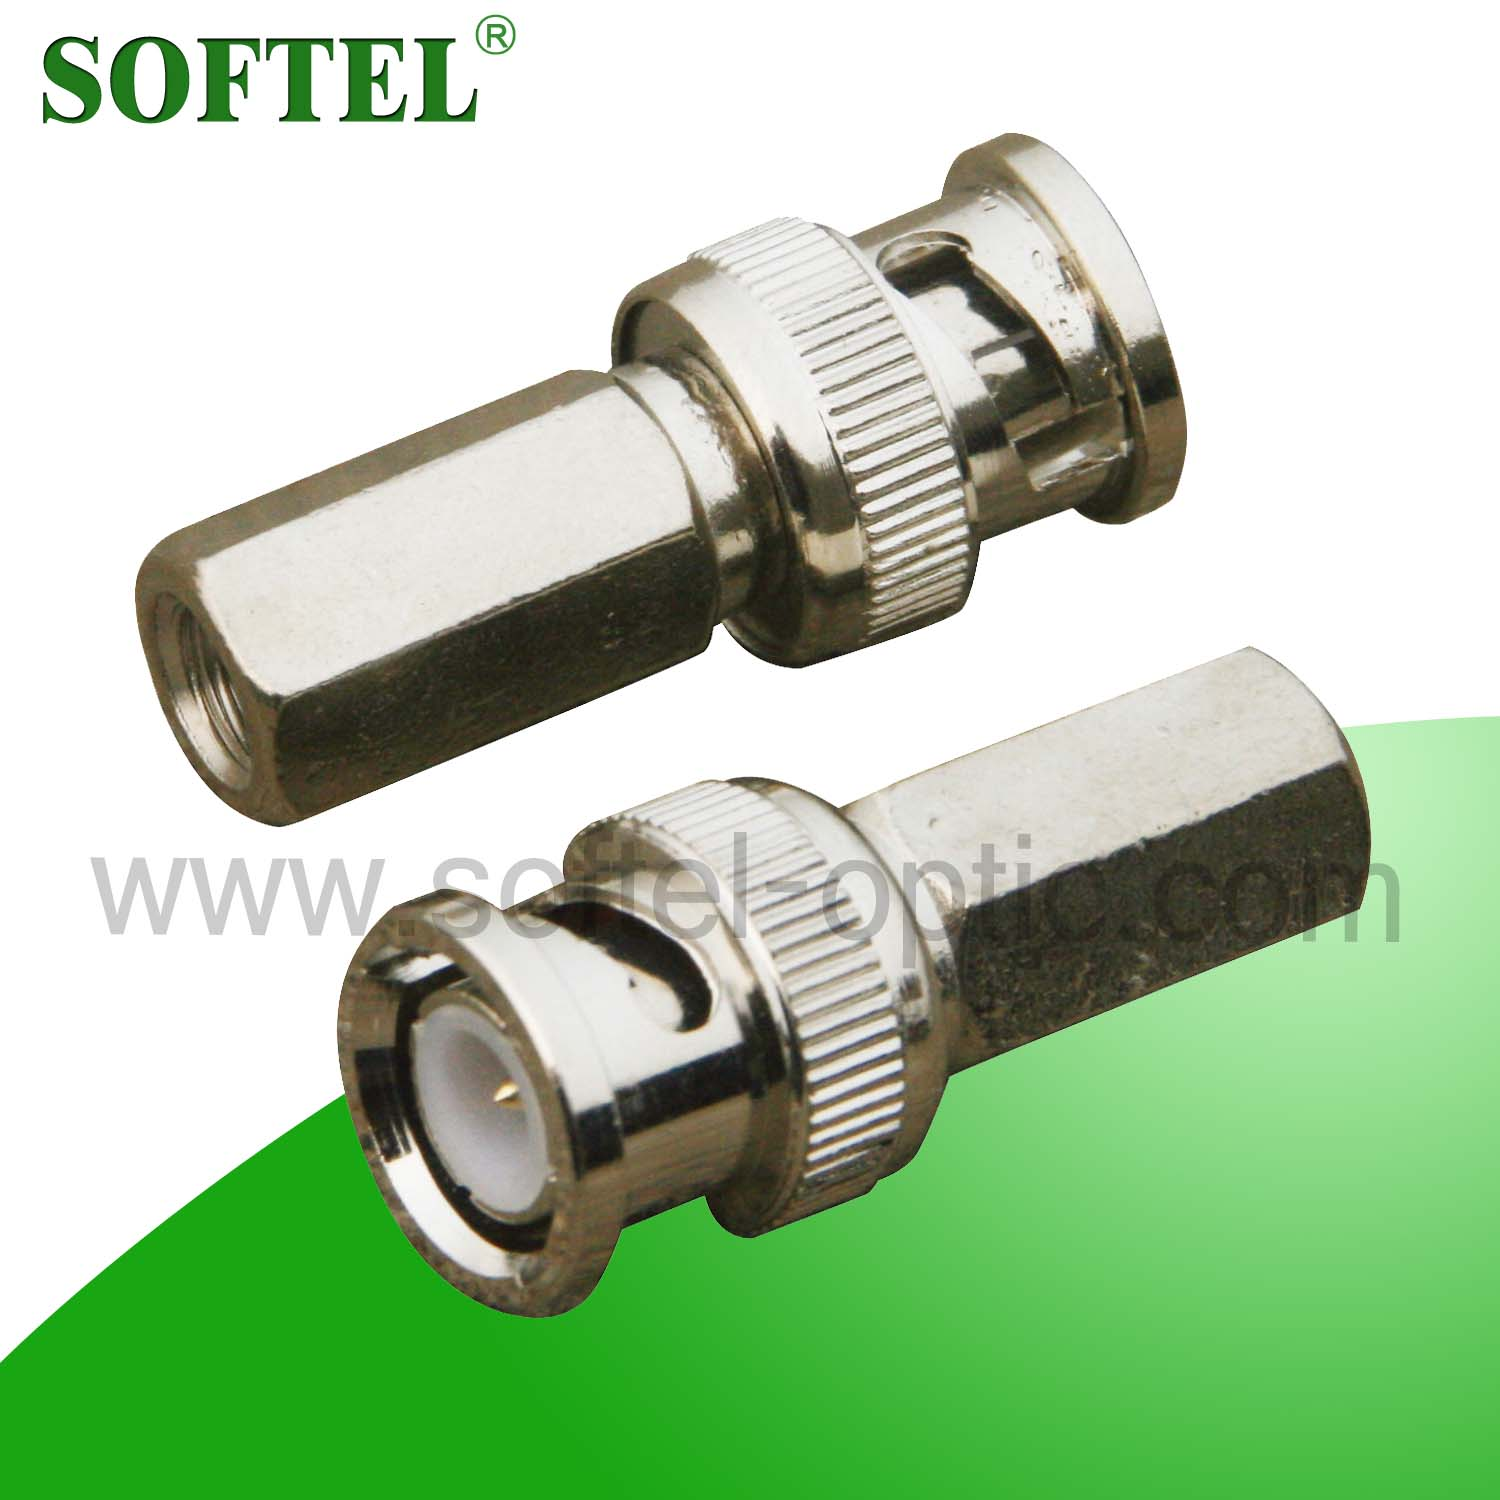 Sf177 Drop Rf Bnc Connector,Rf Switch Connector/drop Wire Connector ...